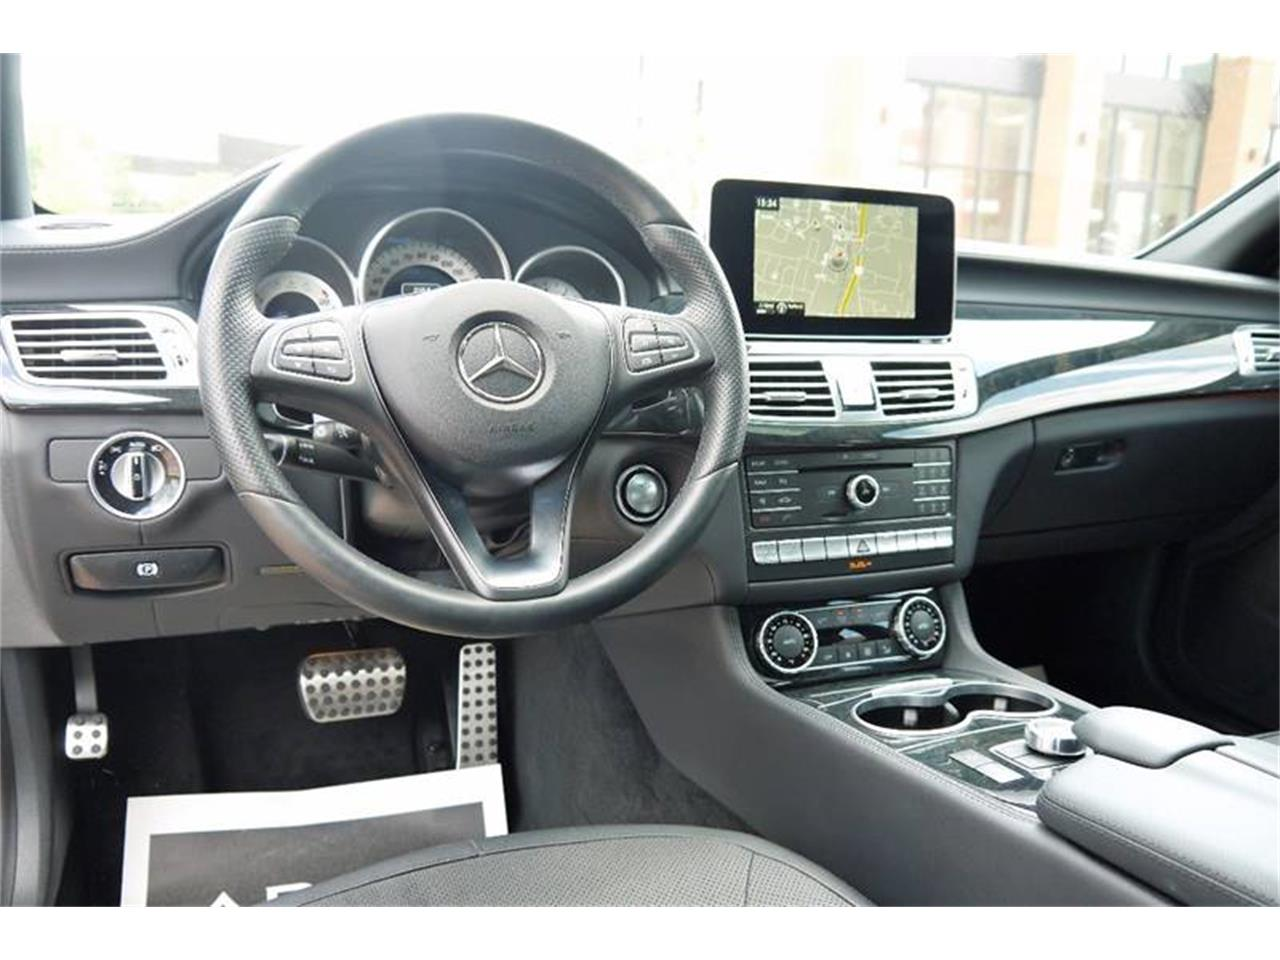 Large Picture of '16 Mercedes-Benz CLS-Class located in Tennessee - $57,800.00 - LEUE